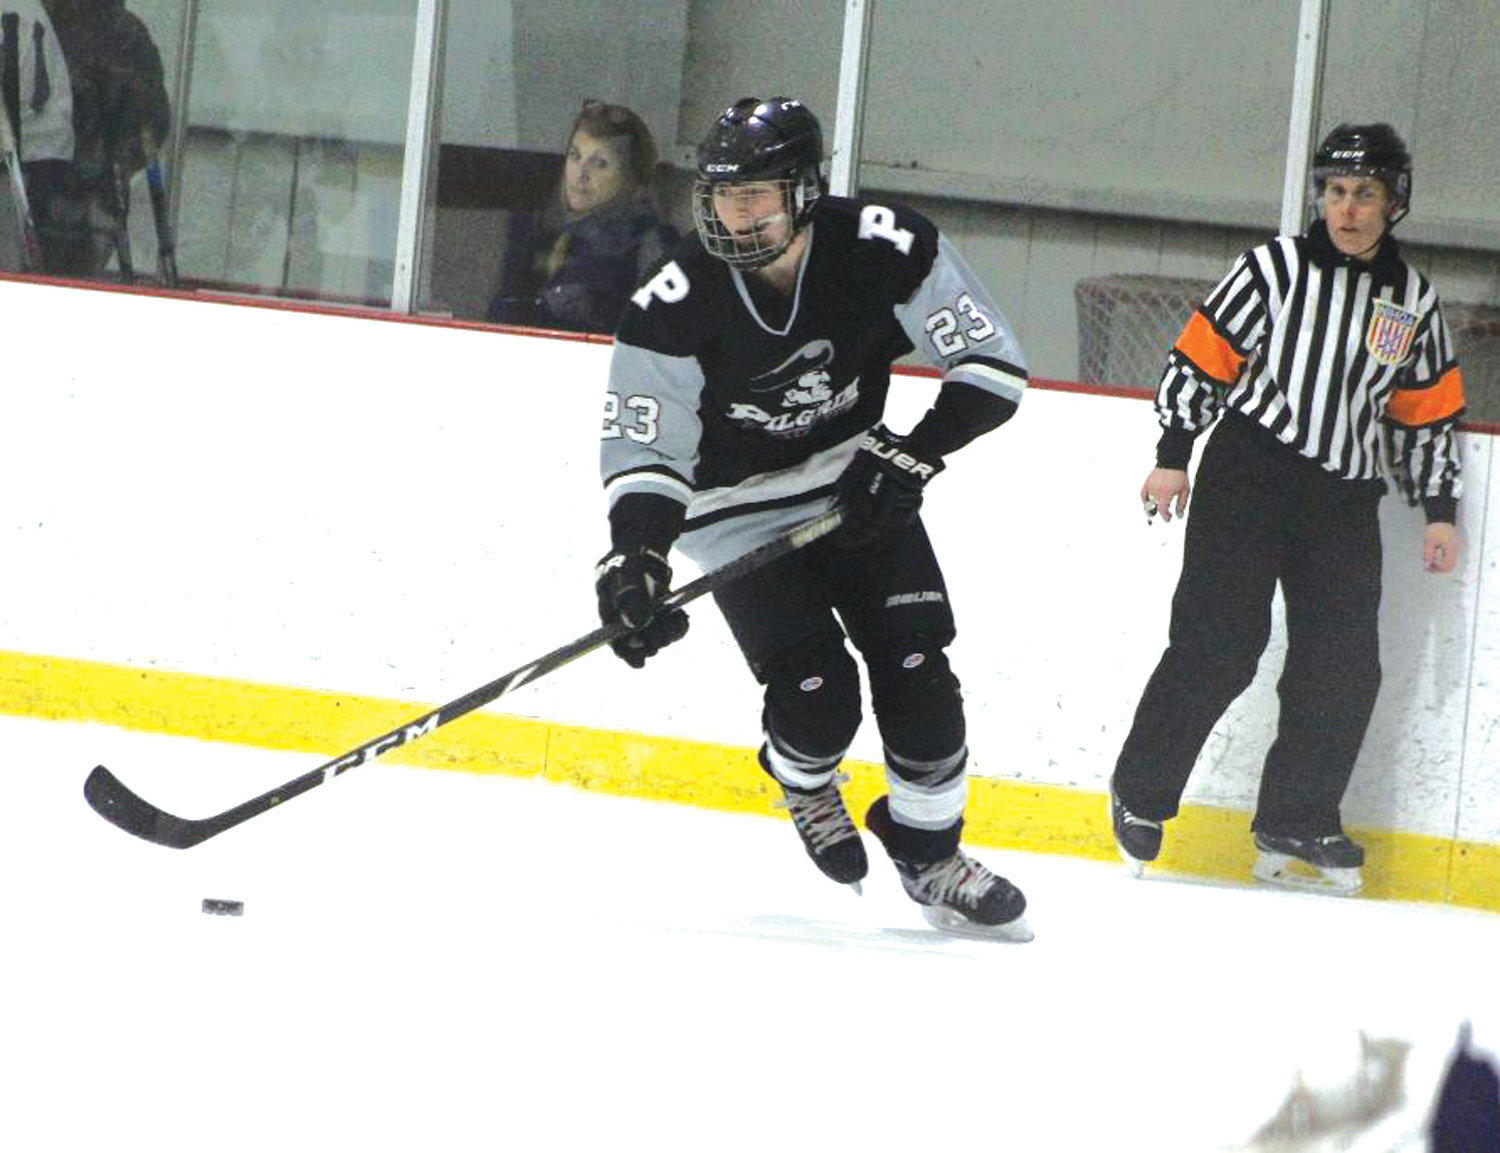 UP THE ICE: Pilgrim's Daniel DeRobbio.